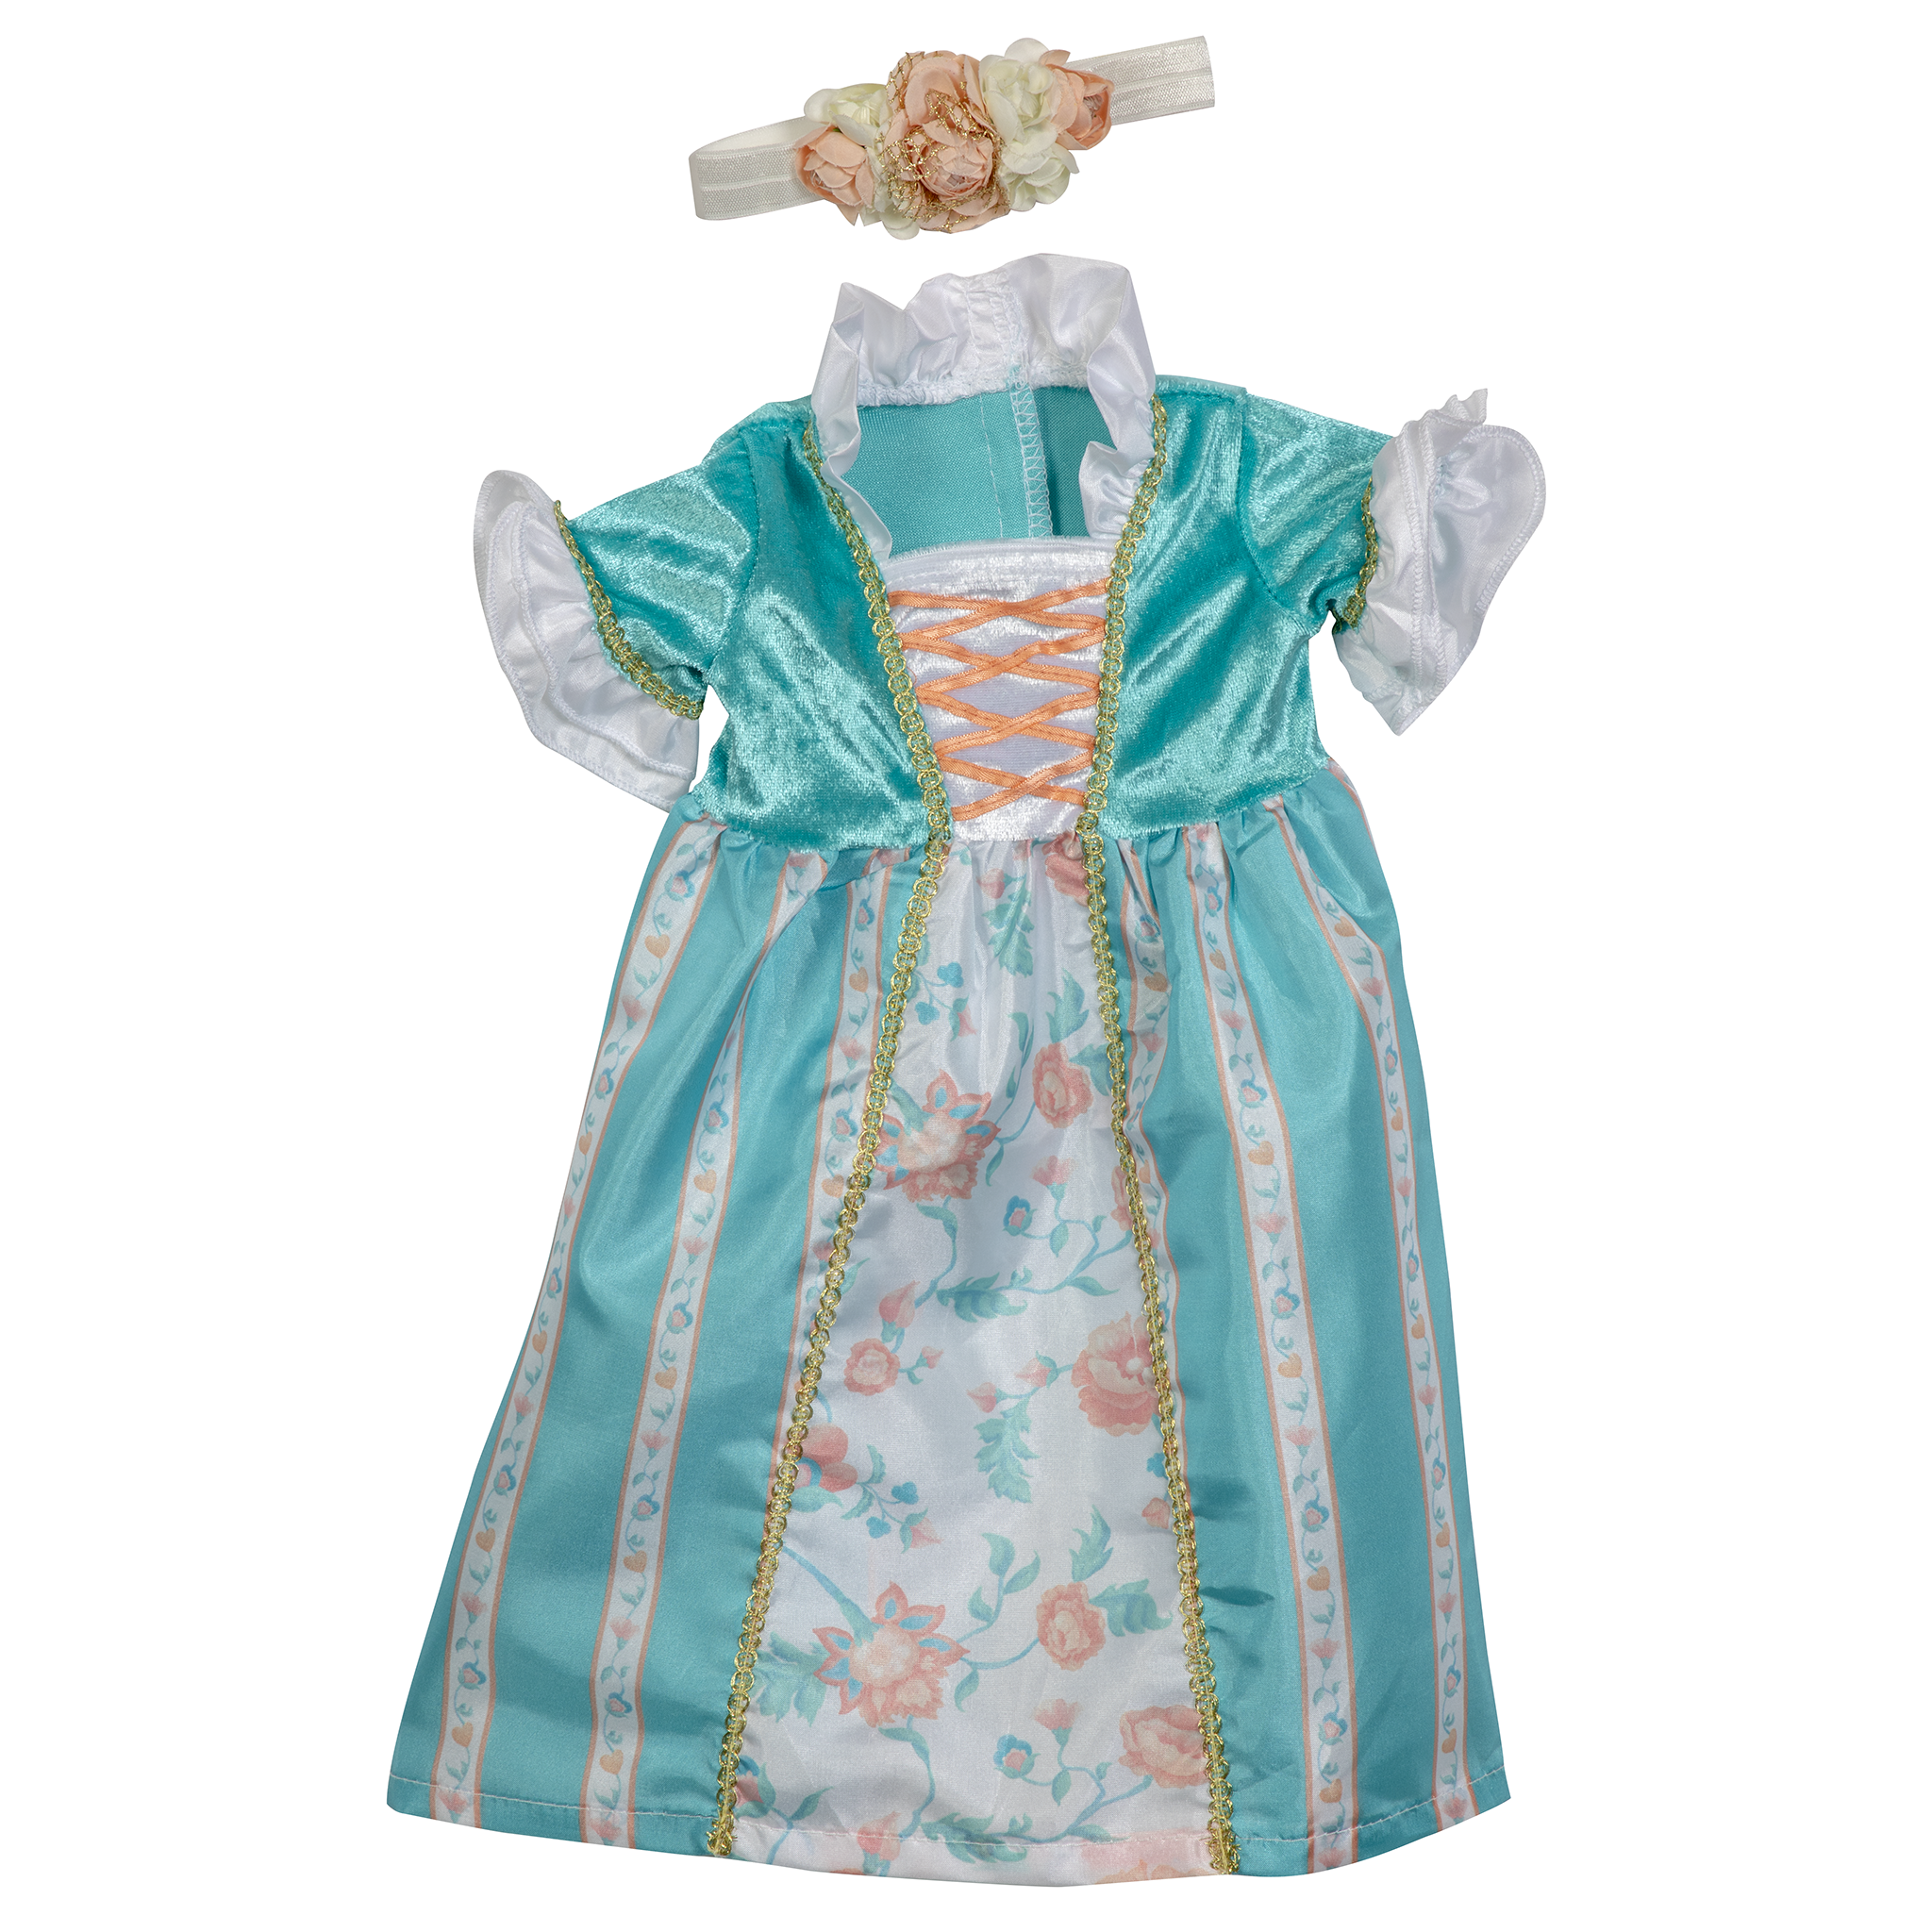 Princess Ava Teal Doll Dress 17-20""